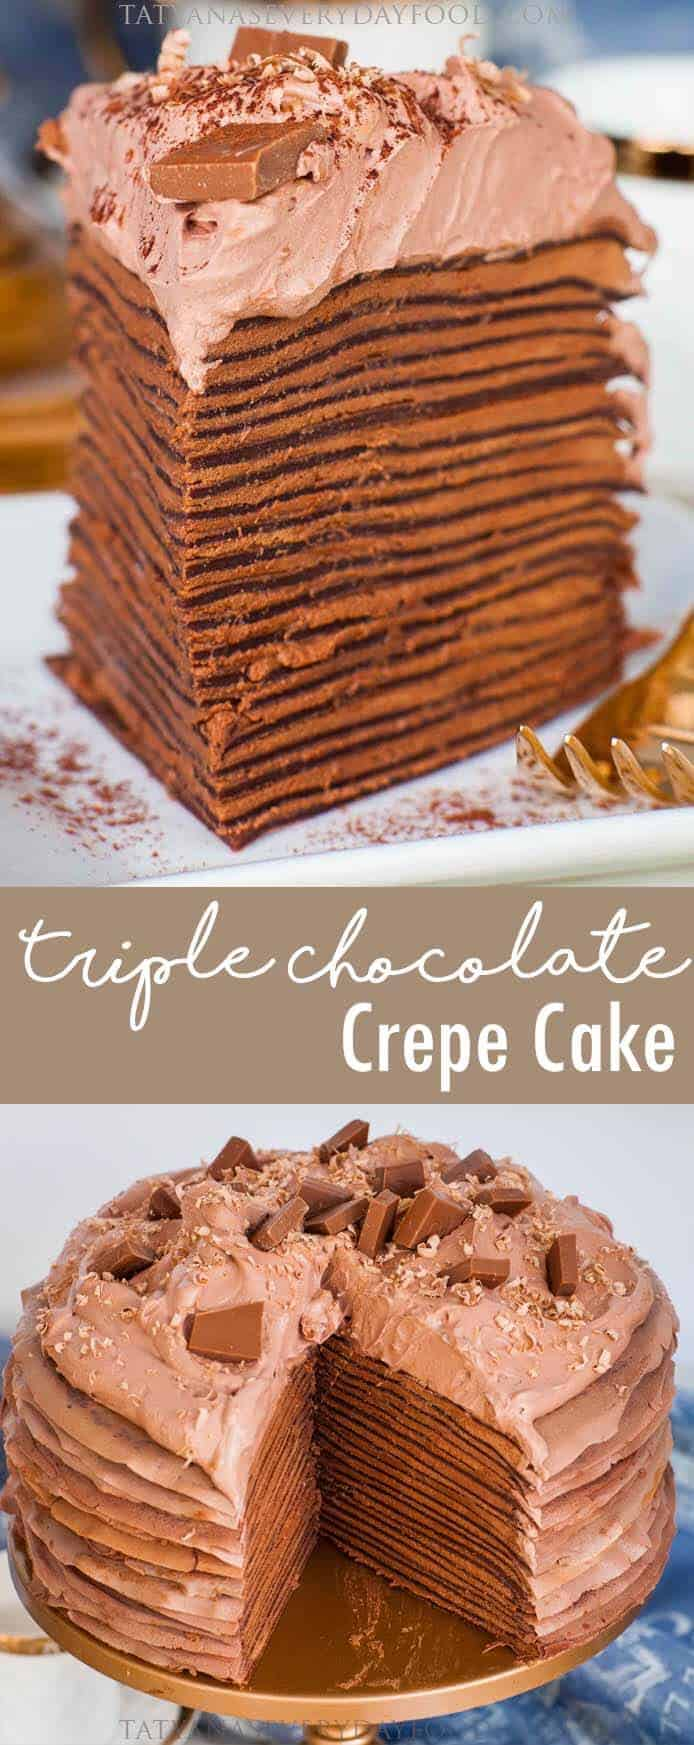 Triple Chocolate Crepe Cake recipe with video